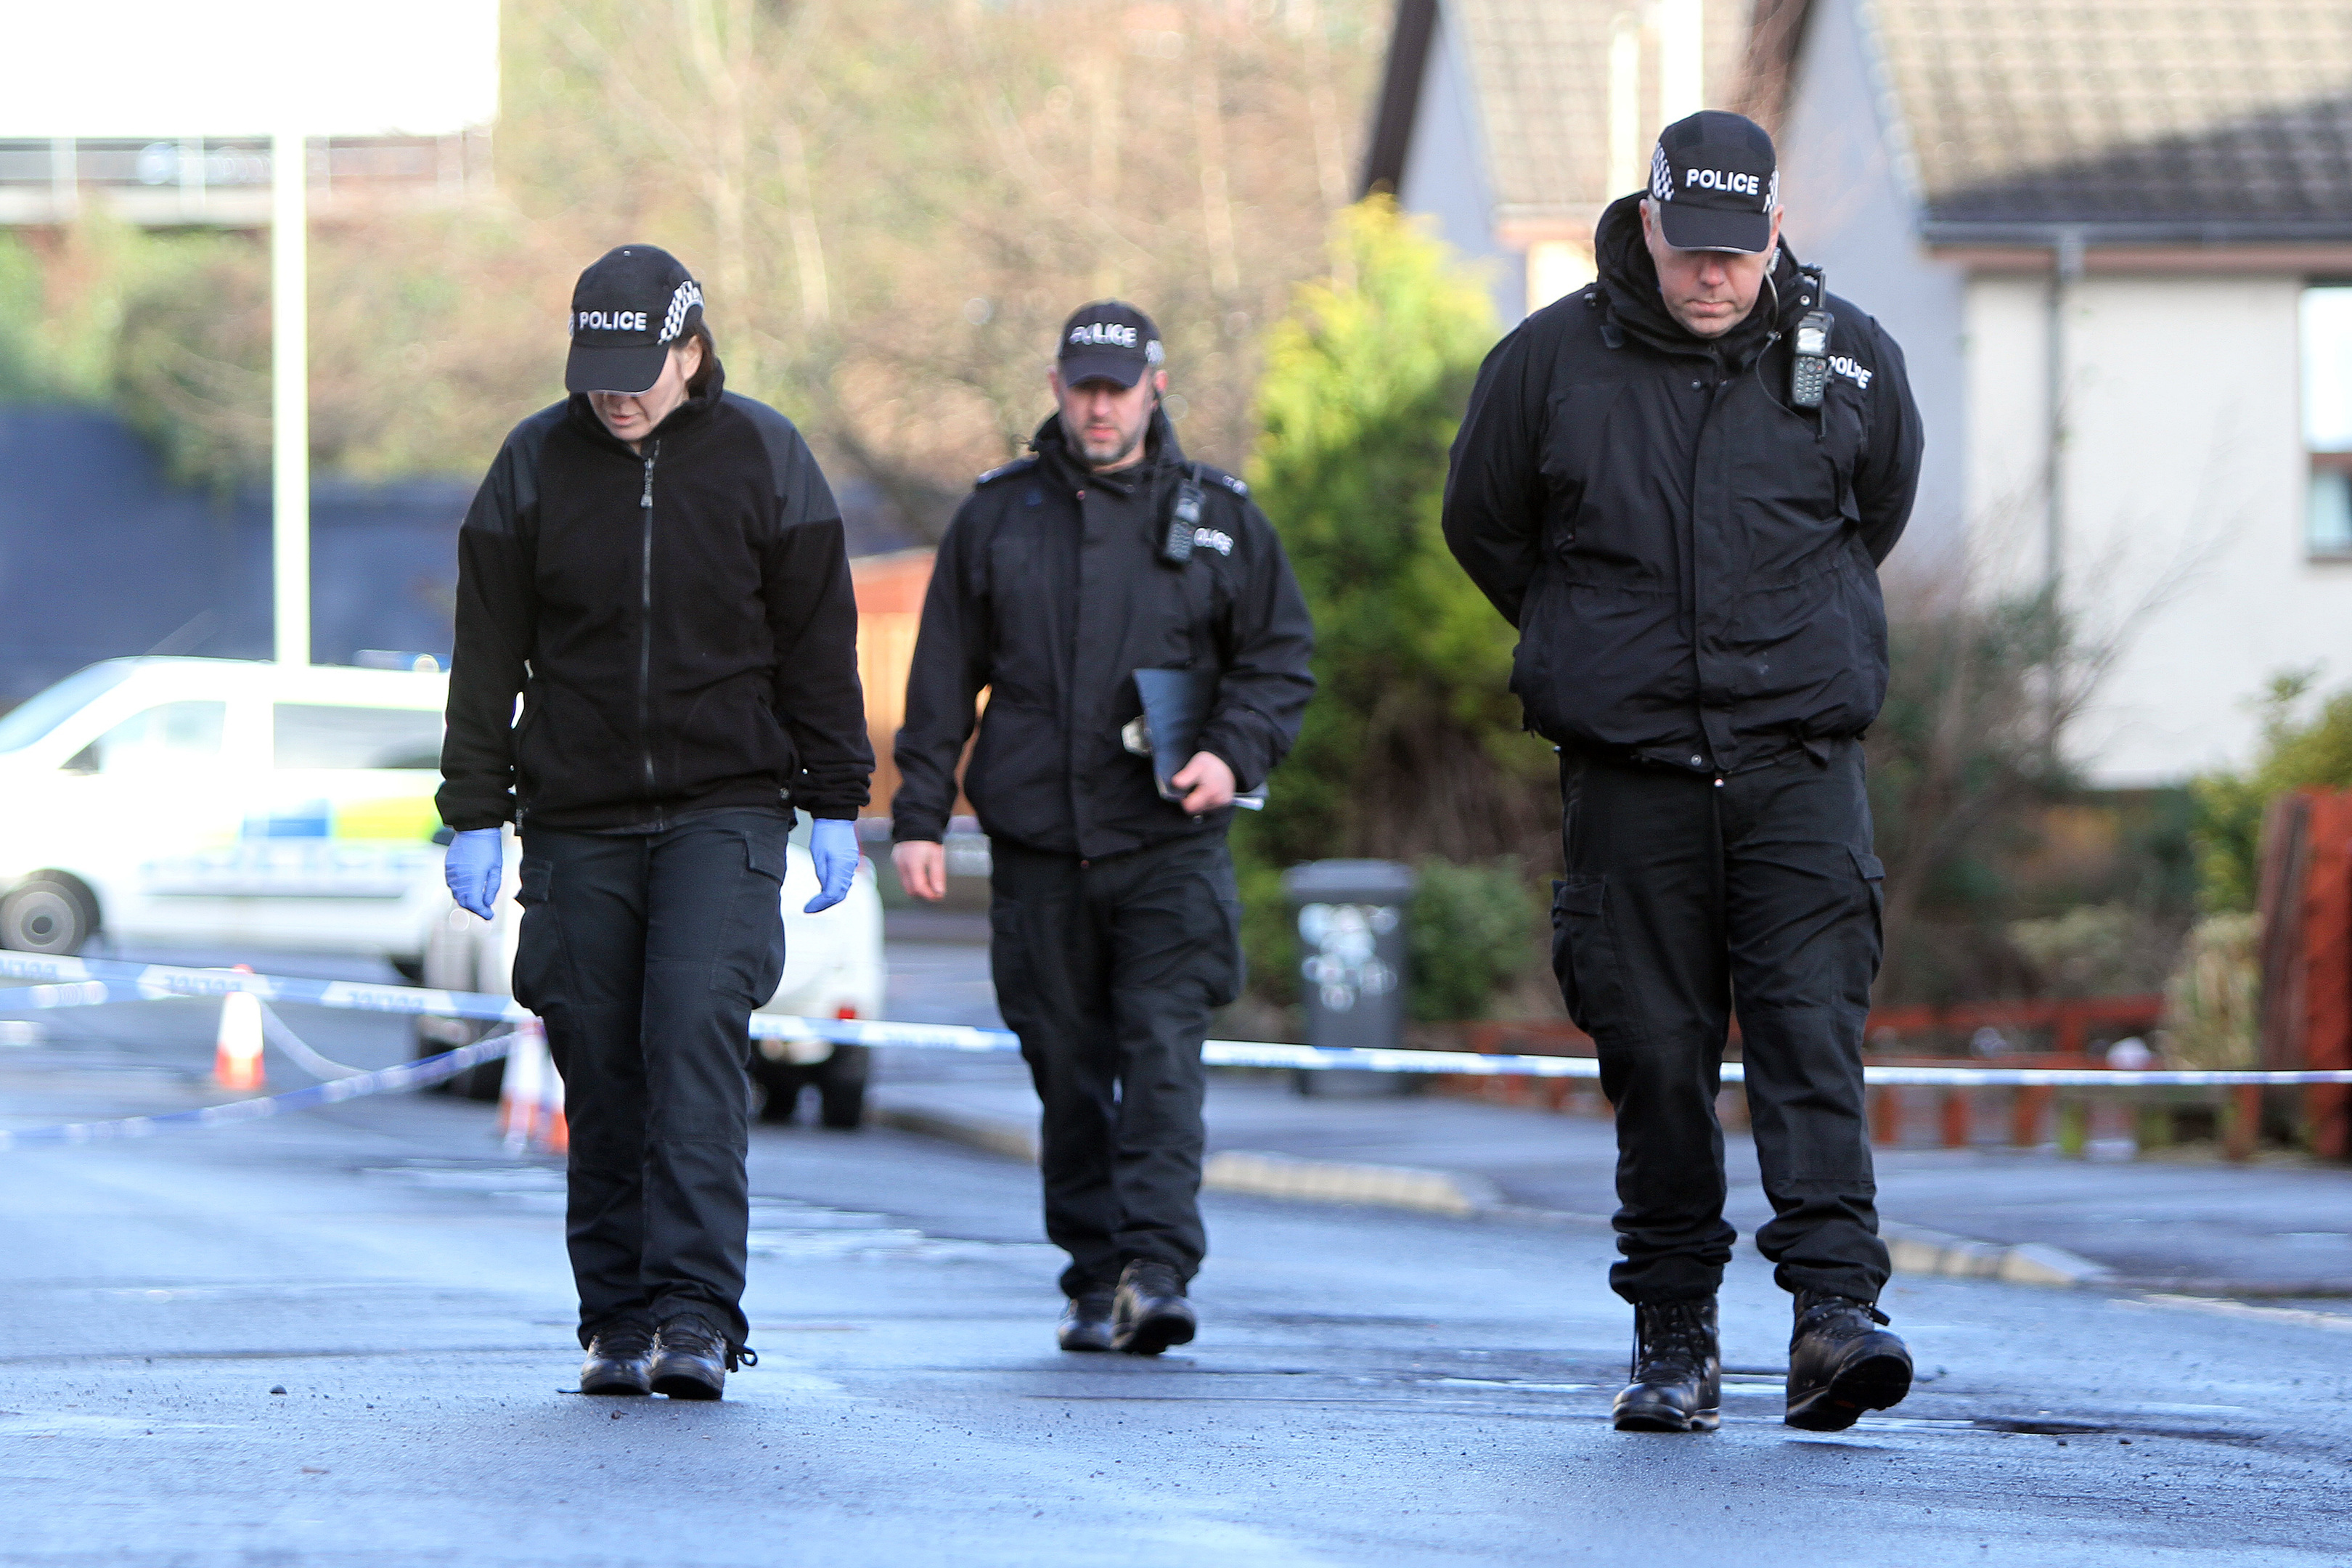 Police look for clues on Mains Road.